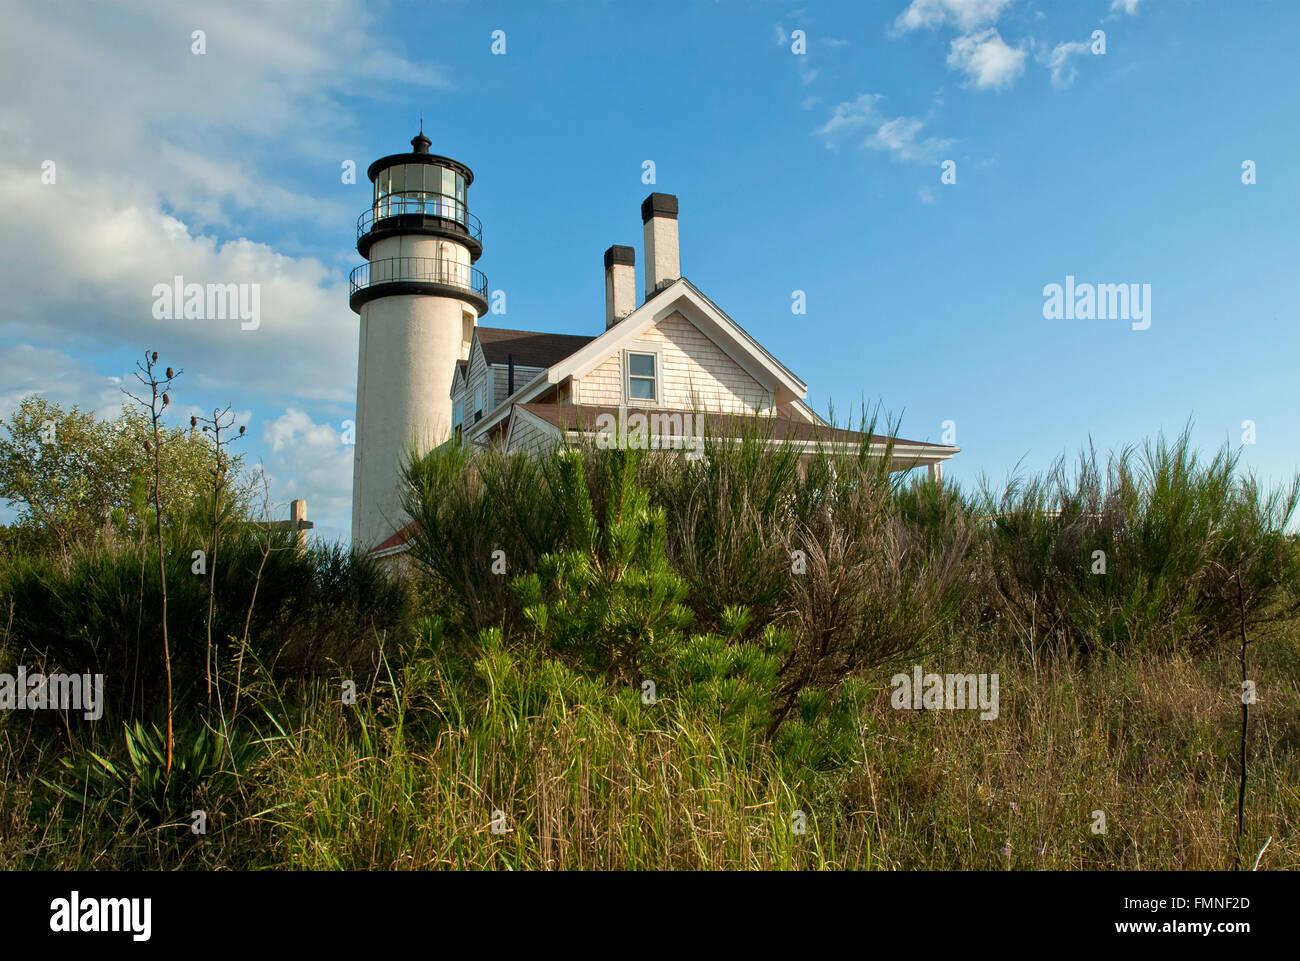 Low angle sun illuminates Highland lighthouse which is surrounded by shrubbery on Cape Cod. - Stock Image